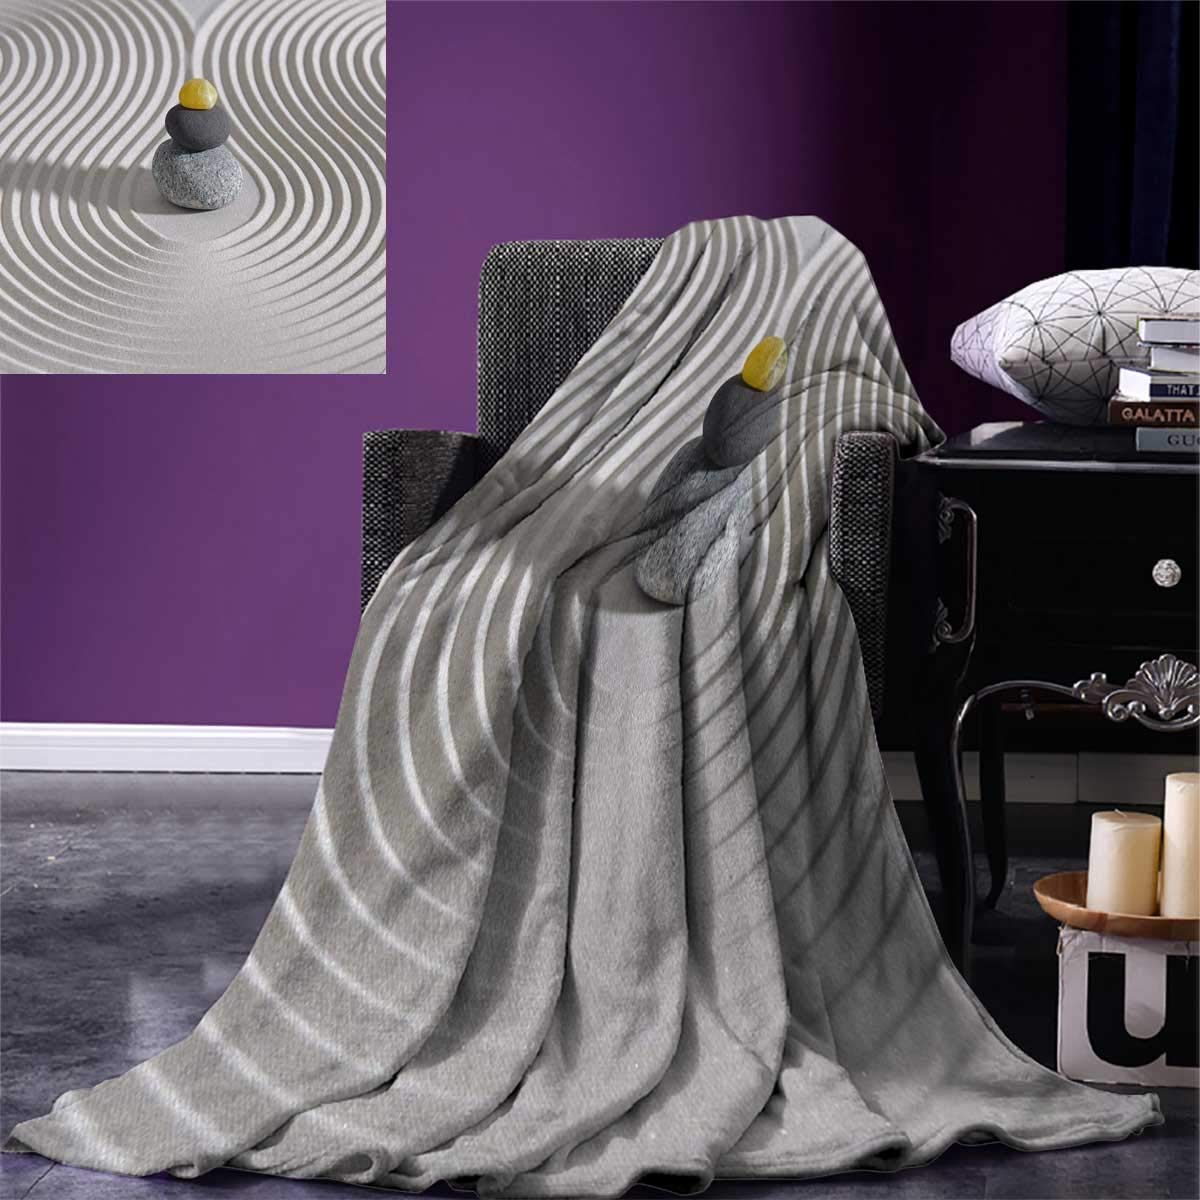 Spa Digital Printing Blanket Three Hot Massage Stones in The Middle of The White Sand Shaped Waves Artwork Summer Quilt Comforter 80''x60'' Grey and Yellow